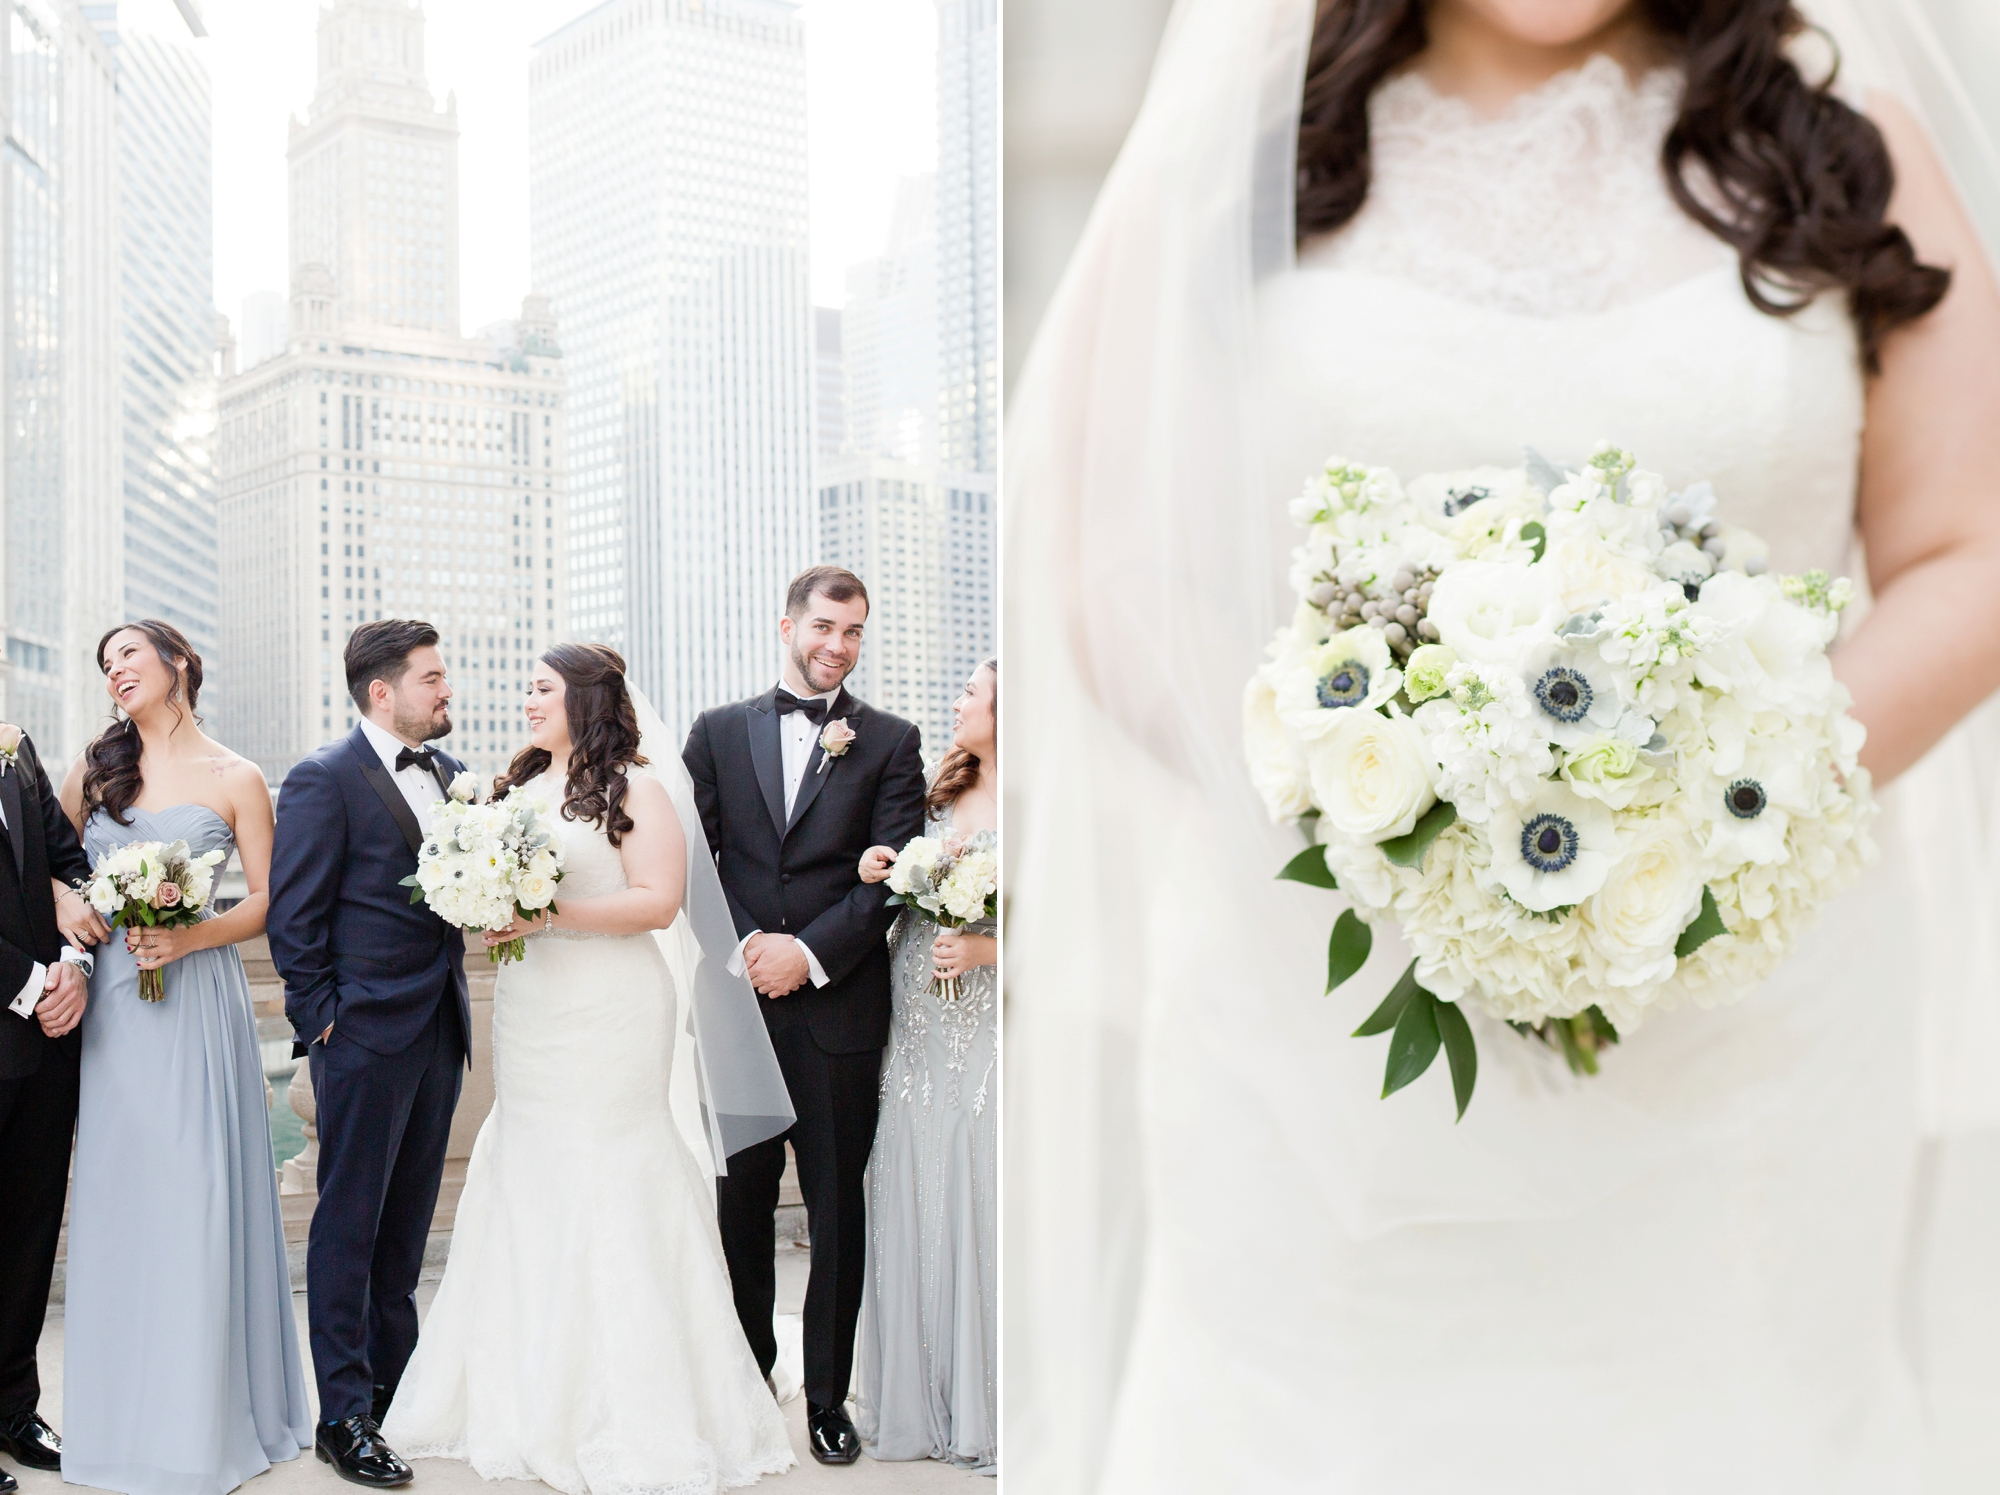 Room 1520 Chicago Wedding